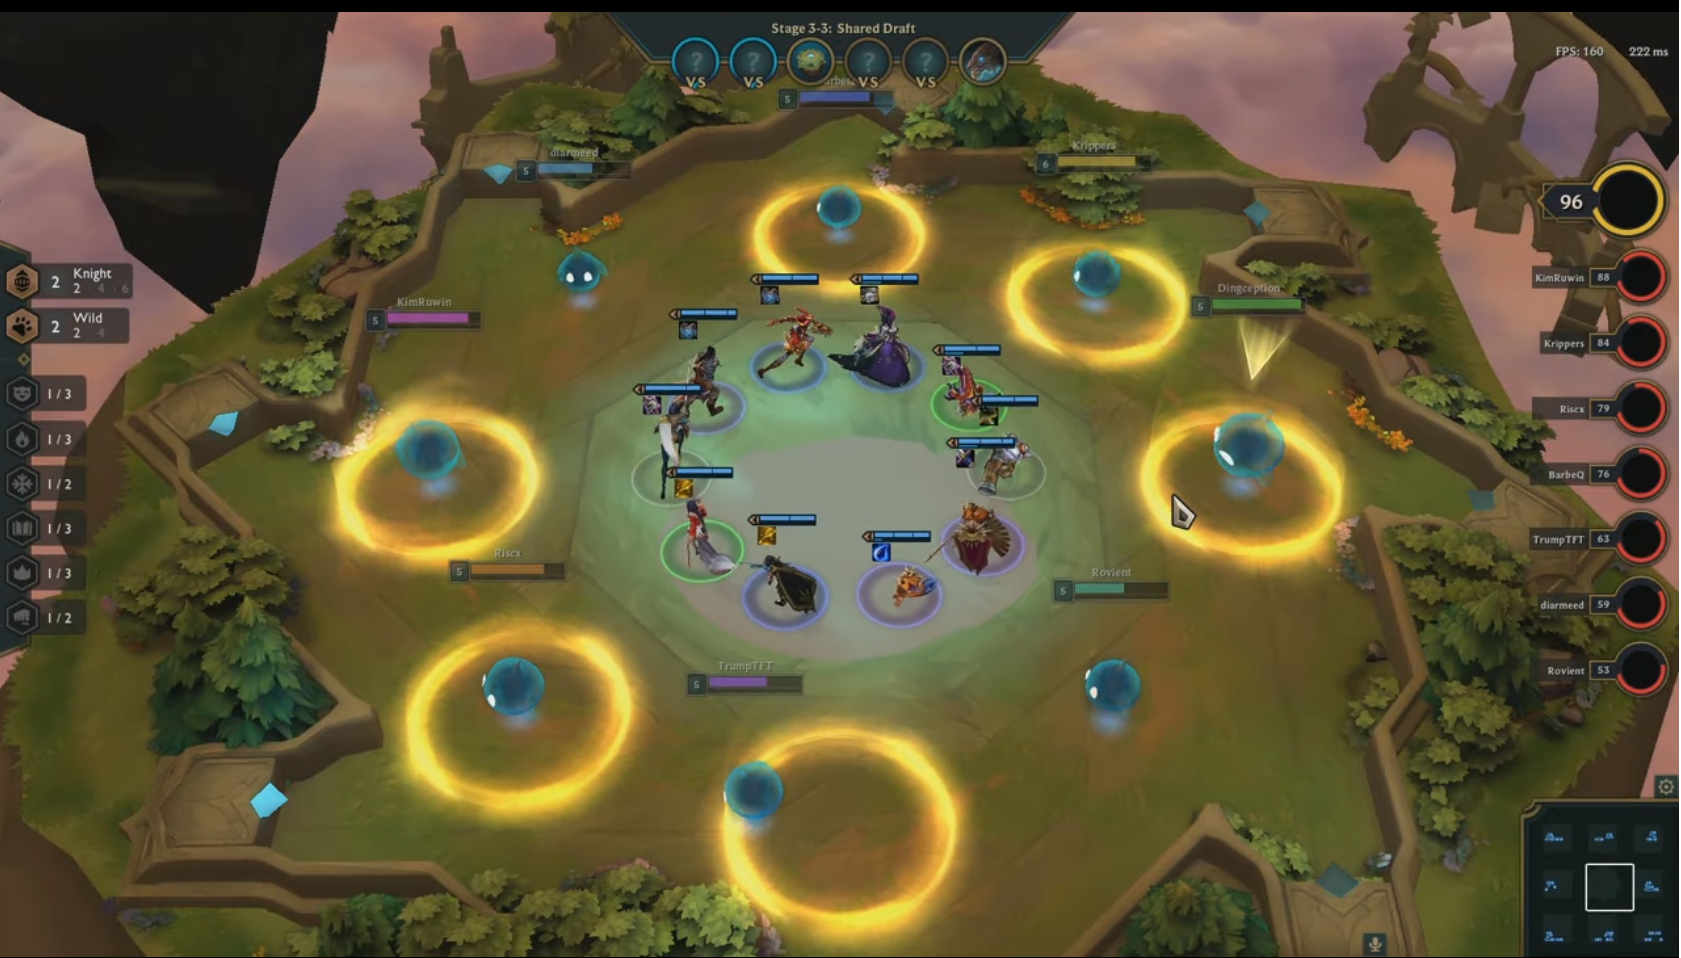 Teamfight Tactics Champions, Origins, and Classes - Be Ready